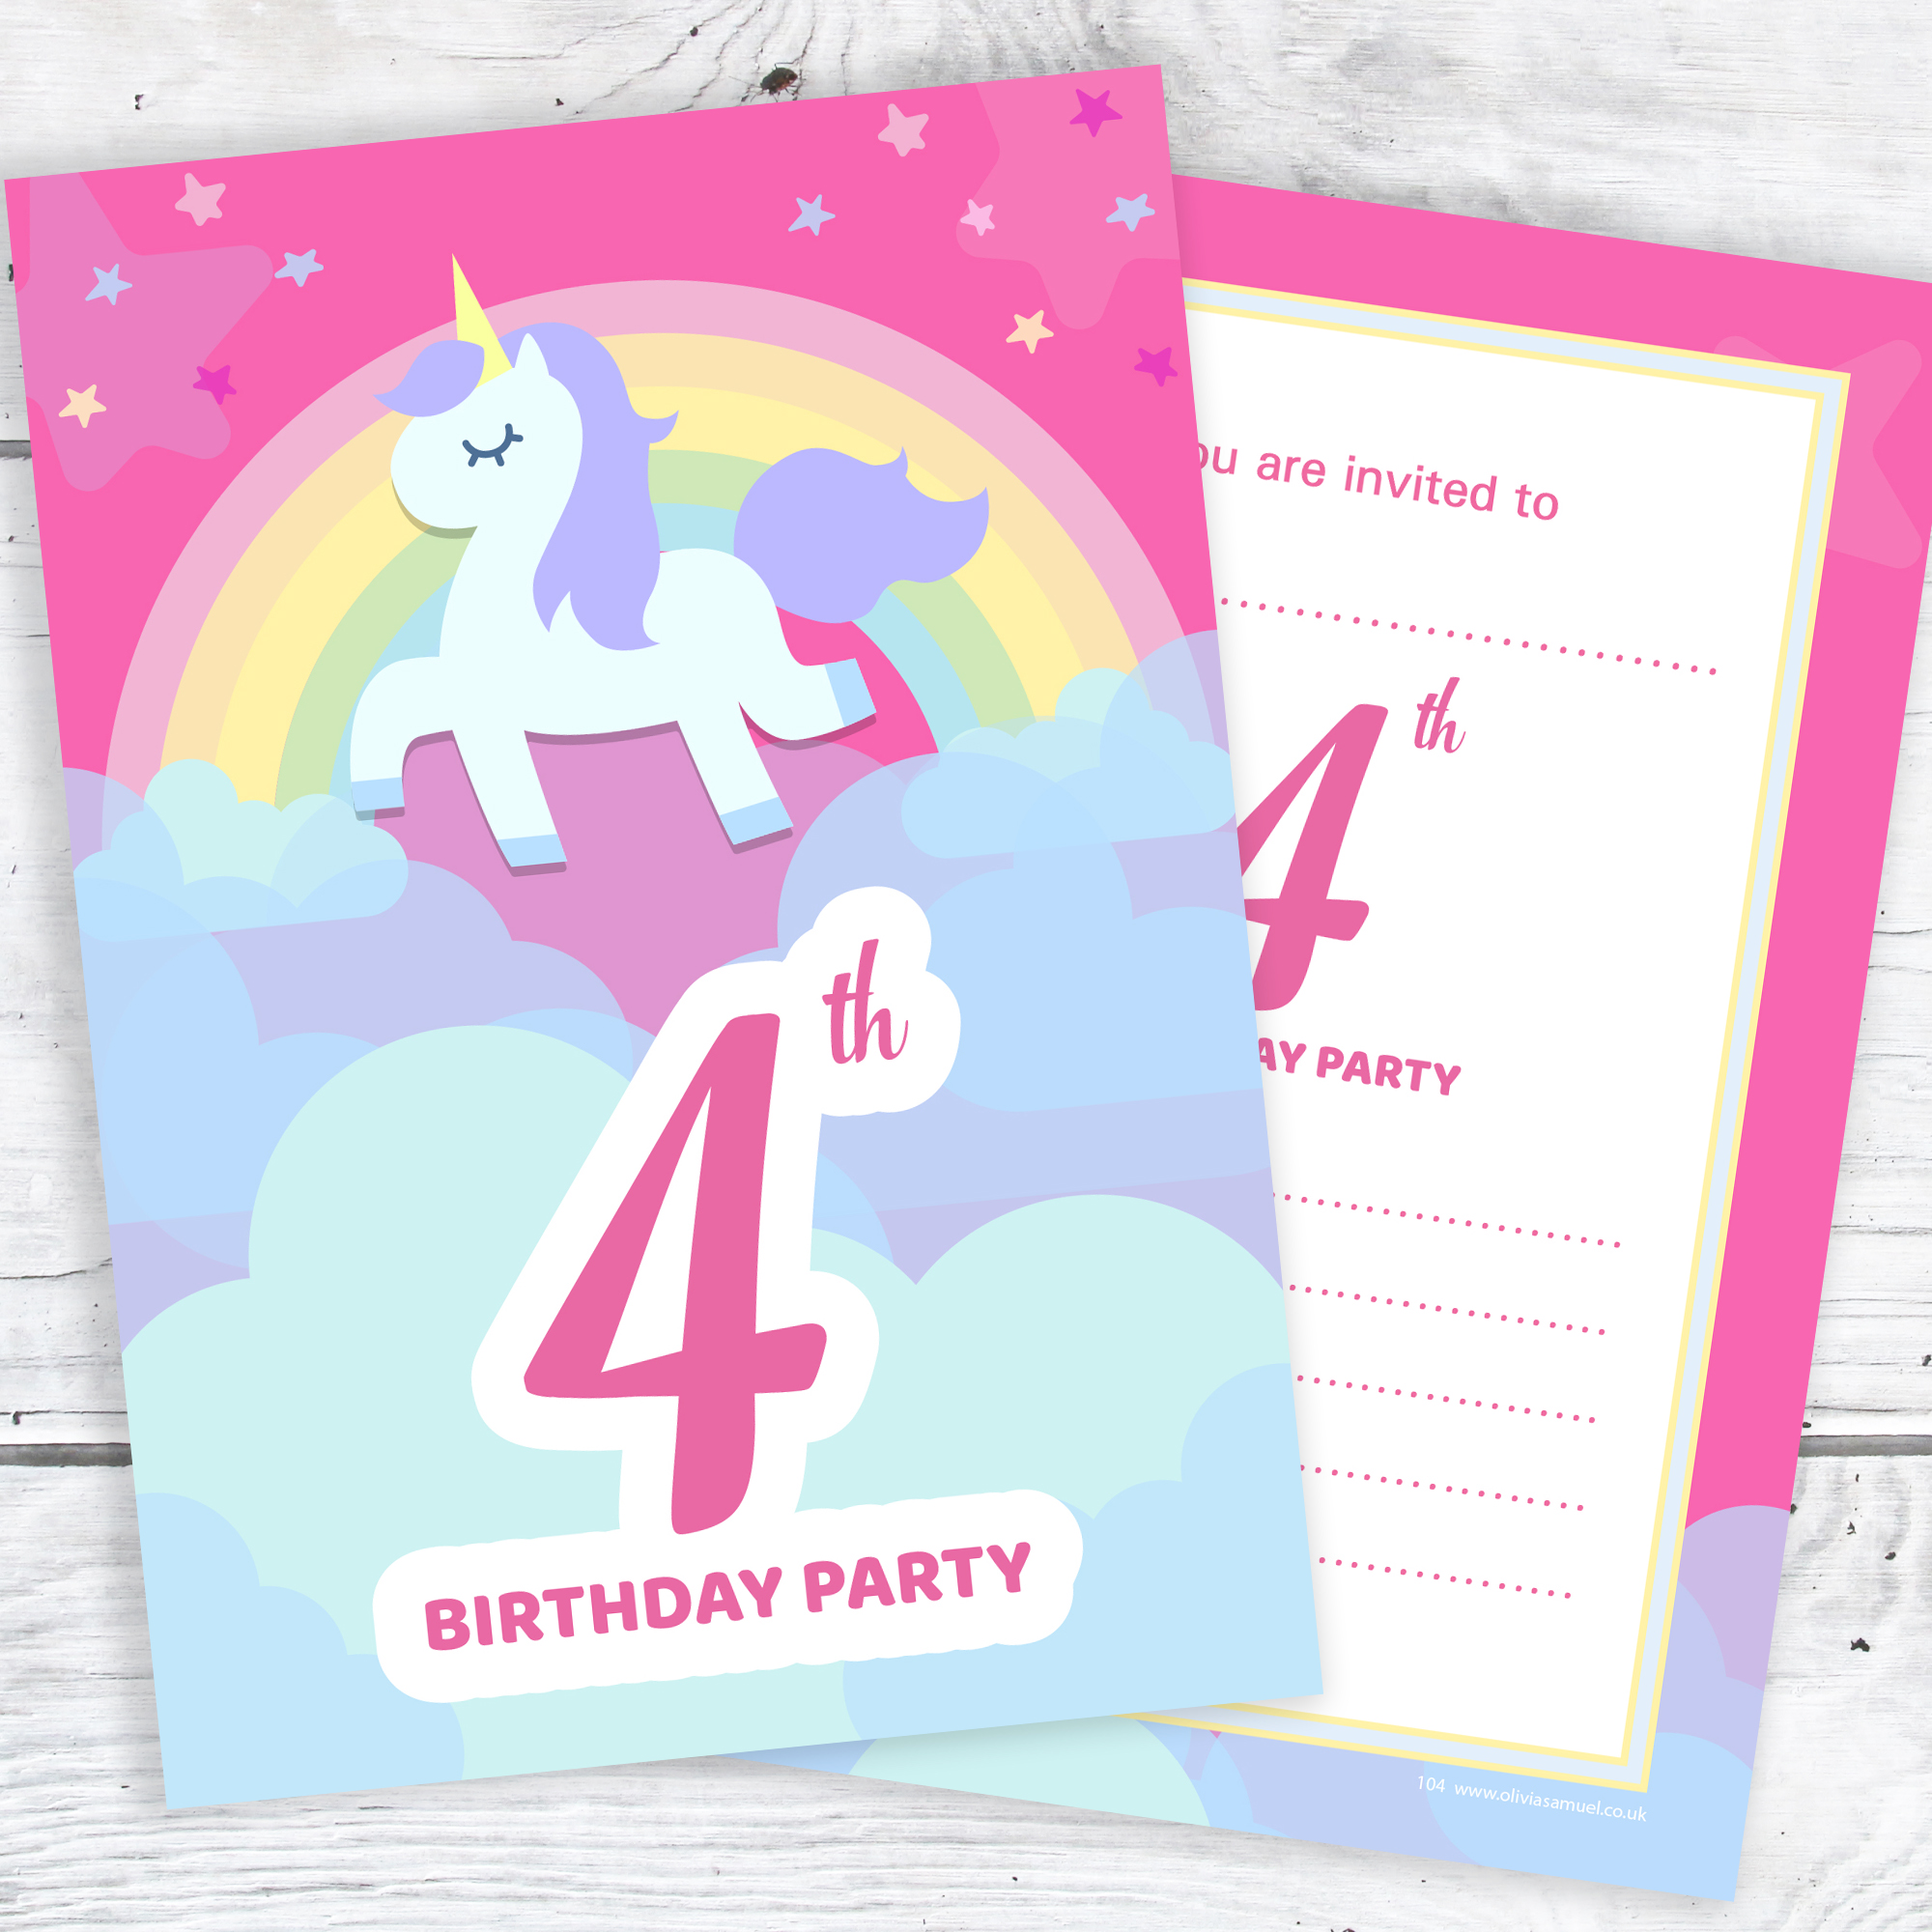 4th birthday party invitations unicorn rainbow pink invites